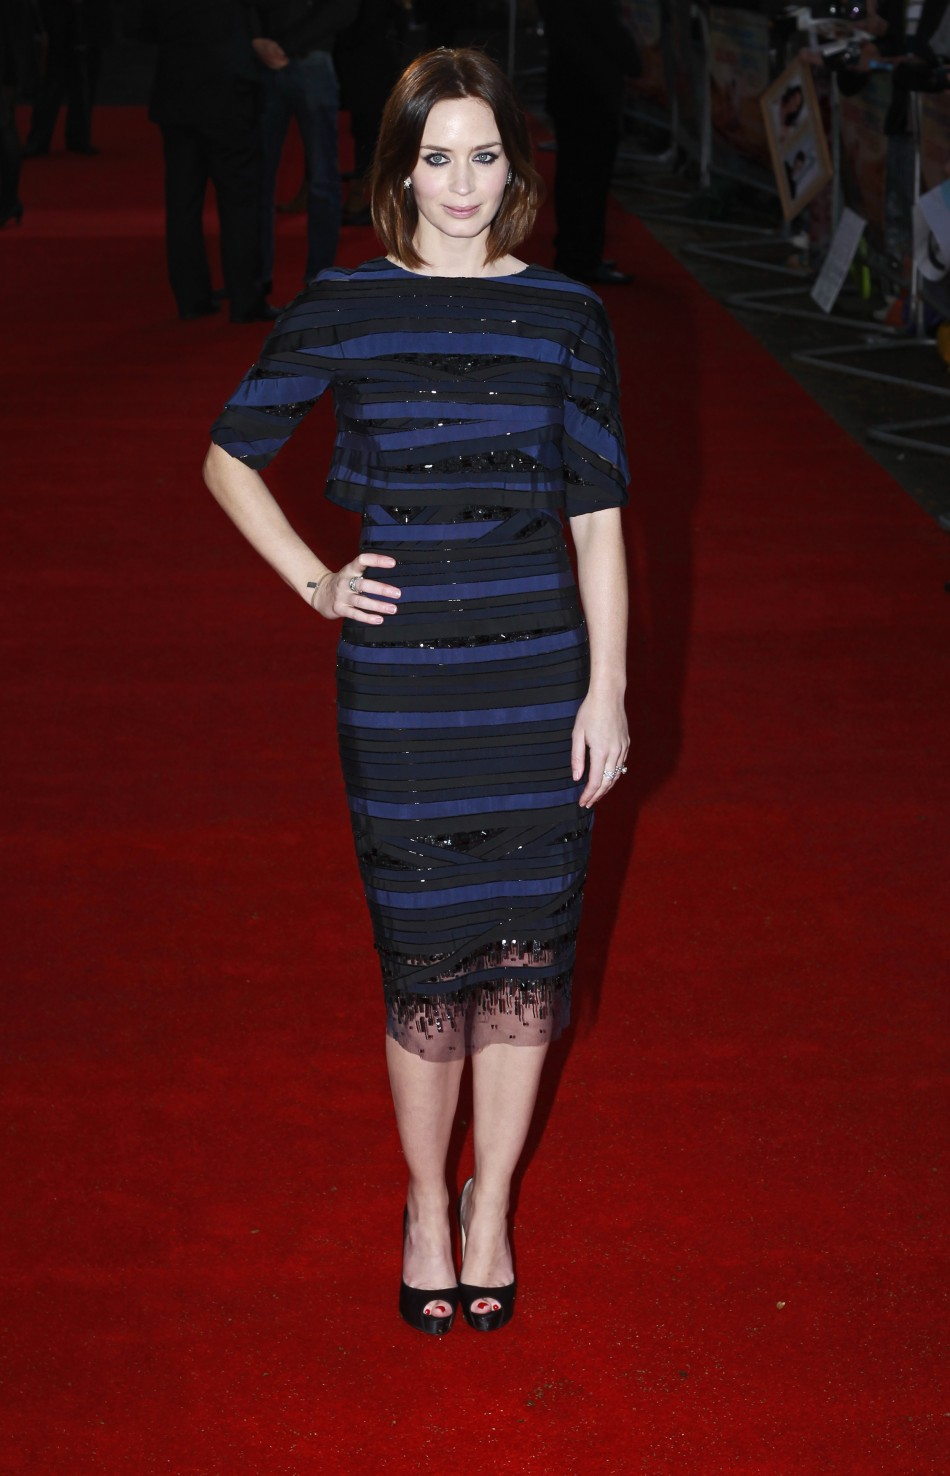 """Actress Emily Blunt poses for a photograph as she arrives for the European premiere of """"Salmon Fishing in the Yemen"""" at the Odeon Kensington in London"""